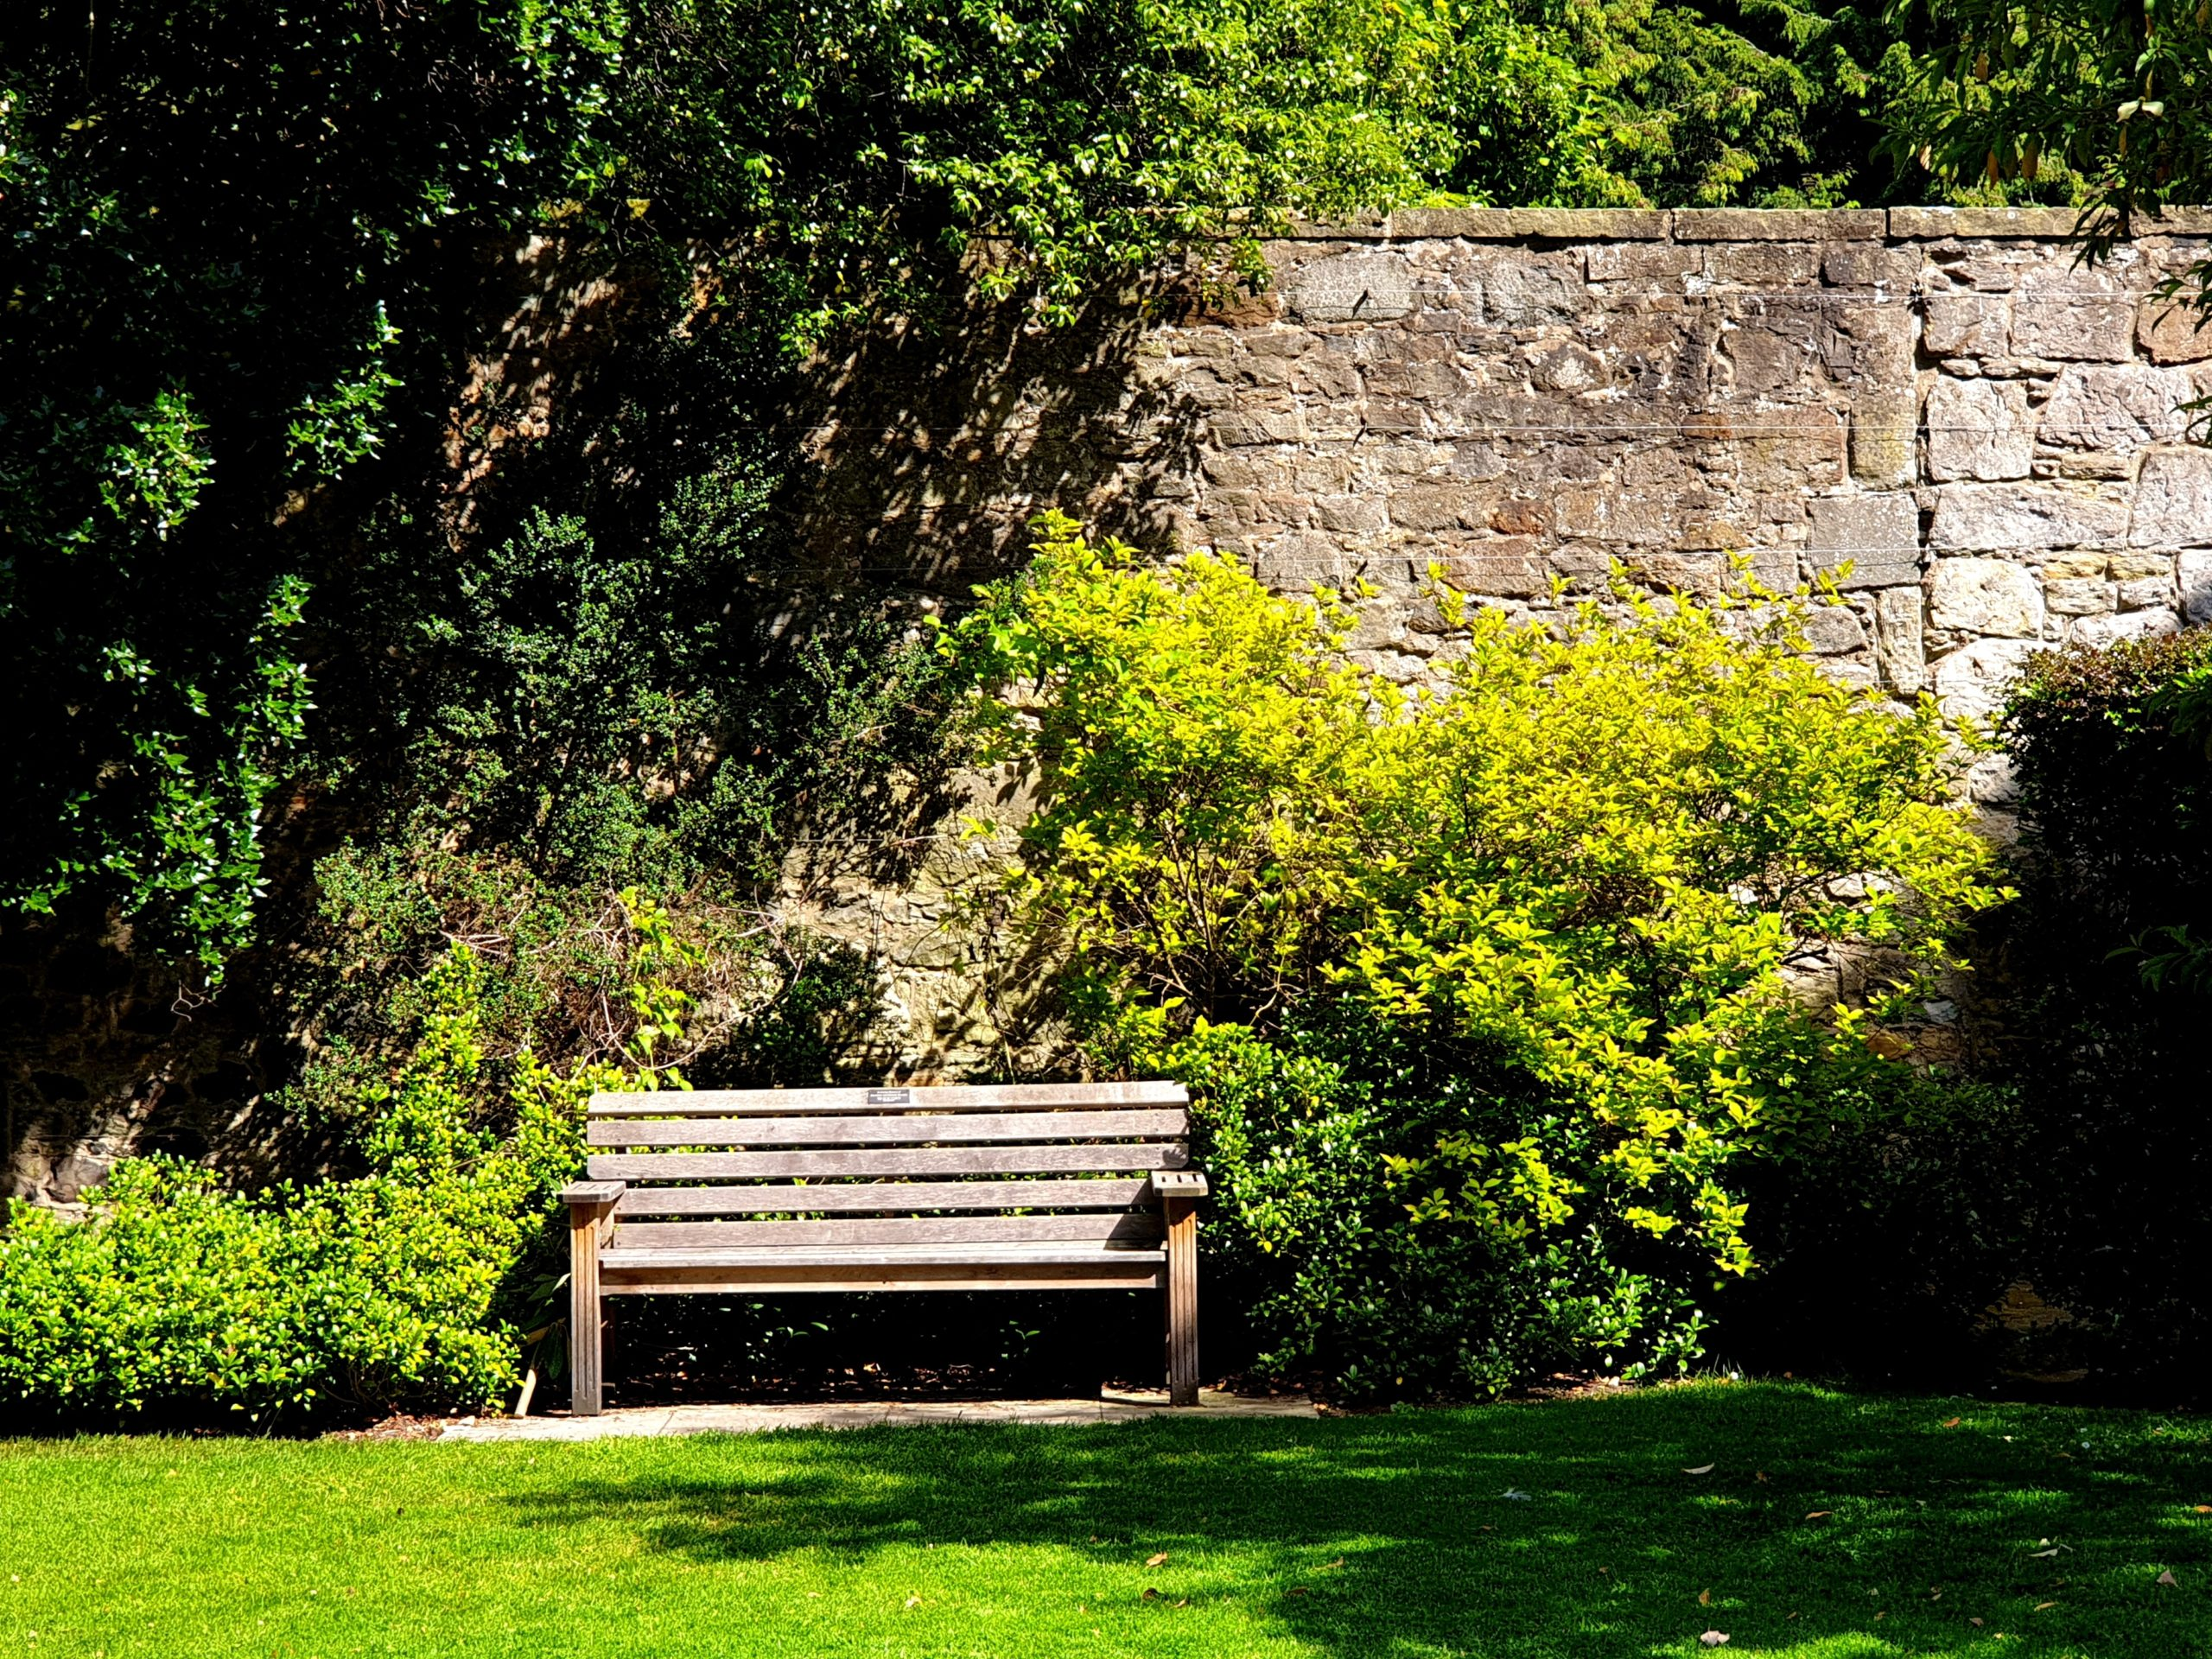 Wooden bench under the green tree during a sunny day